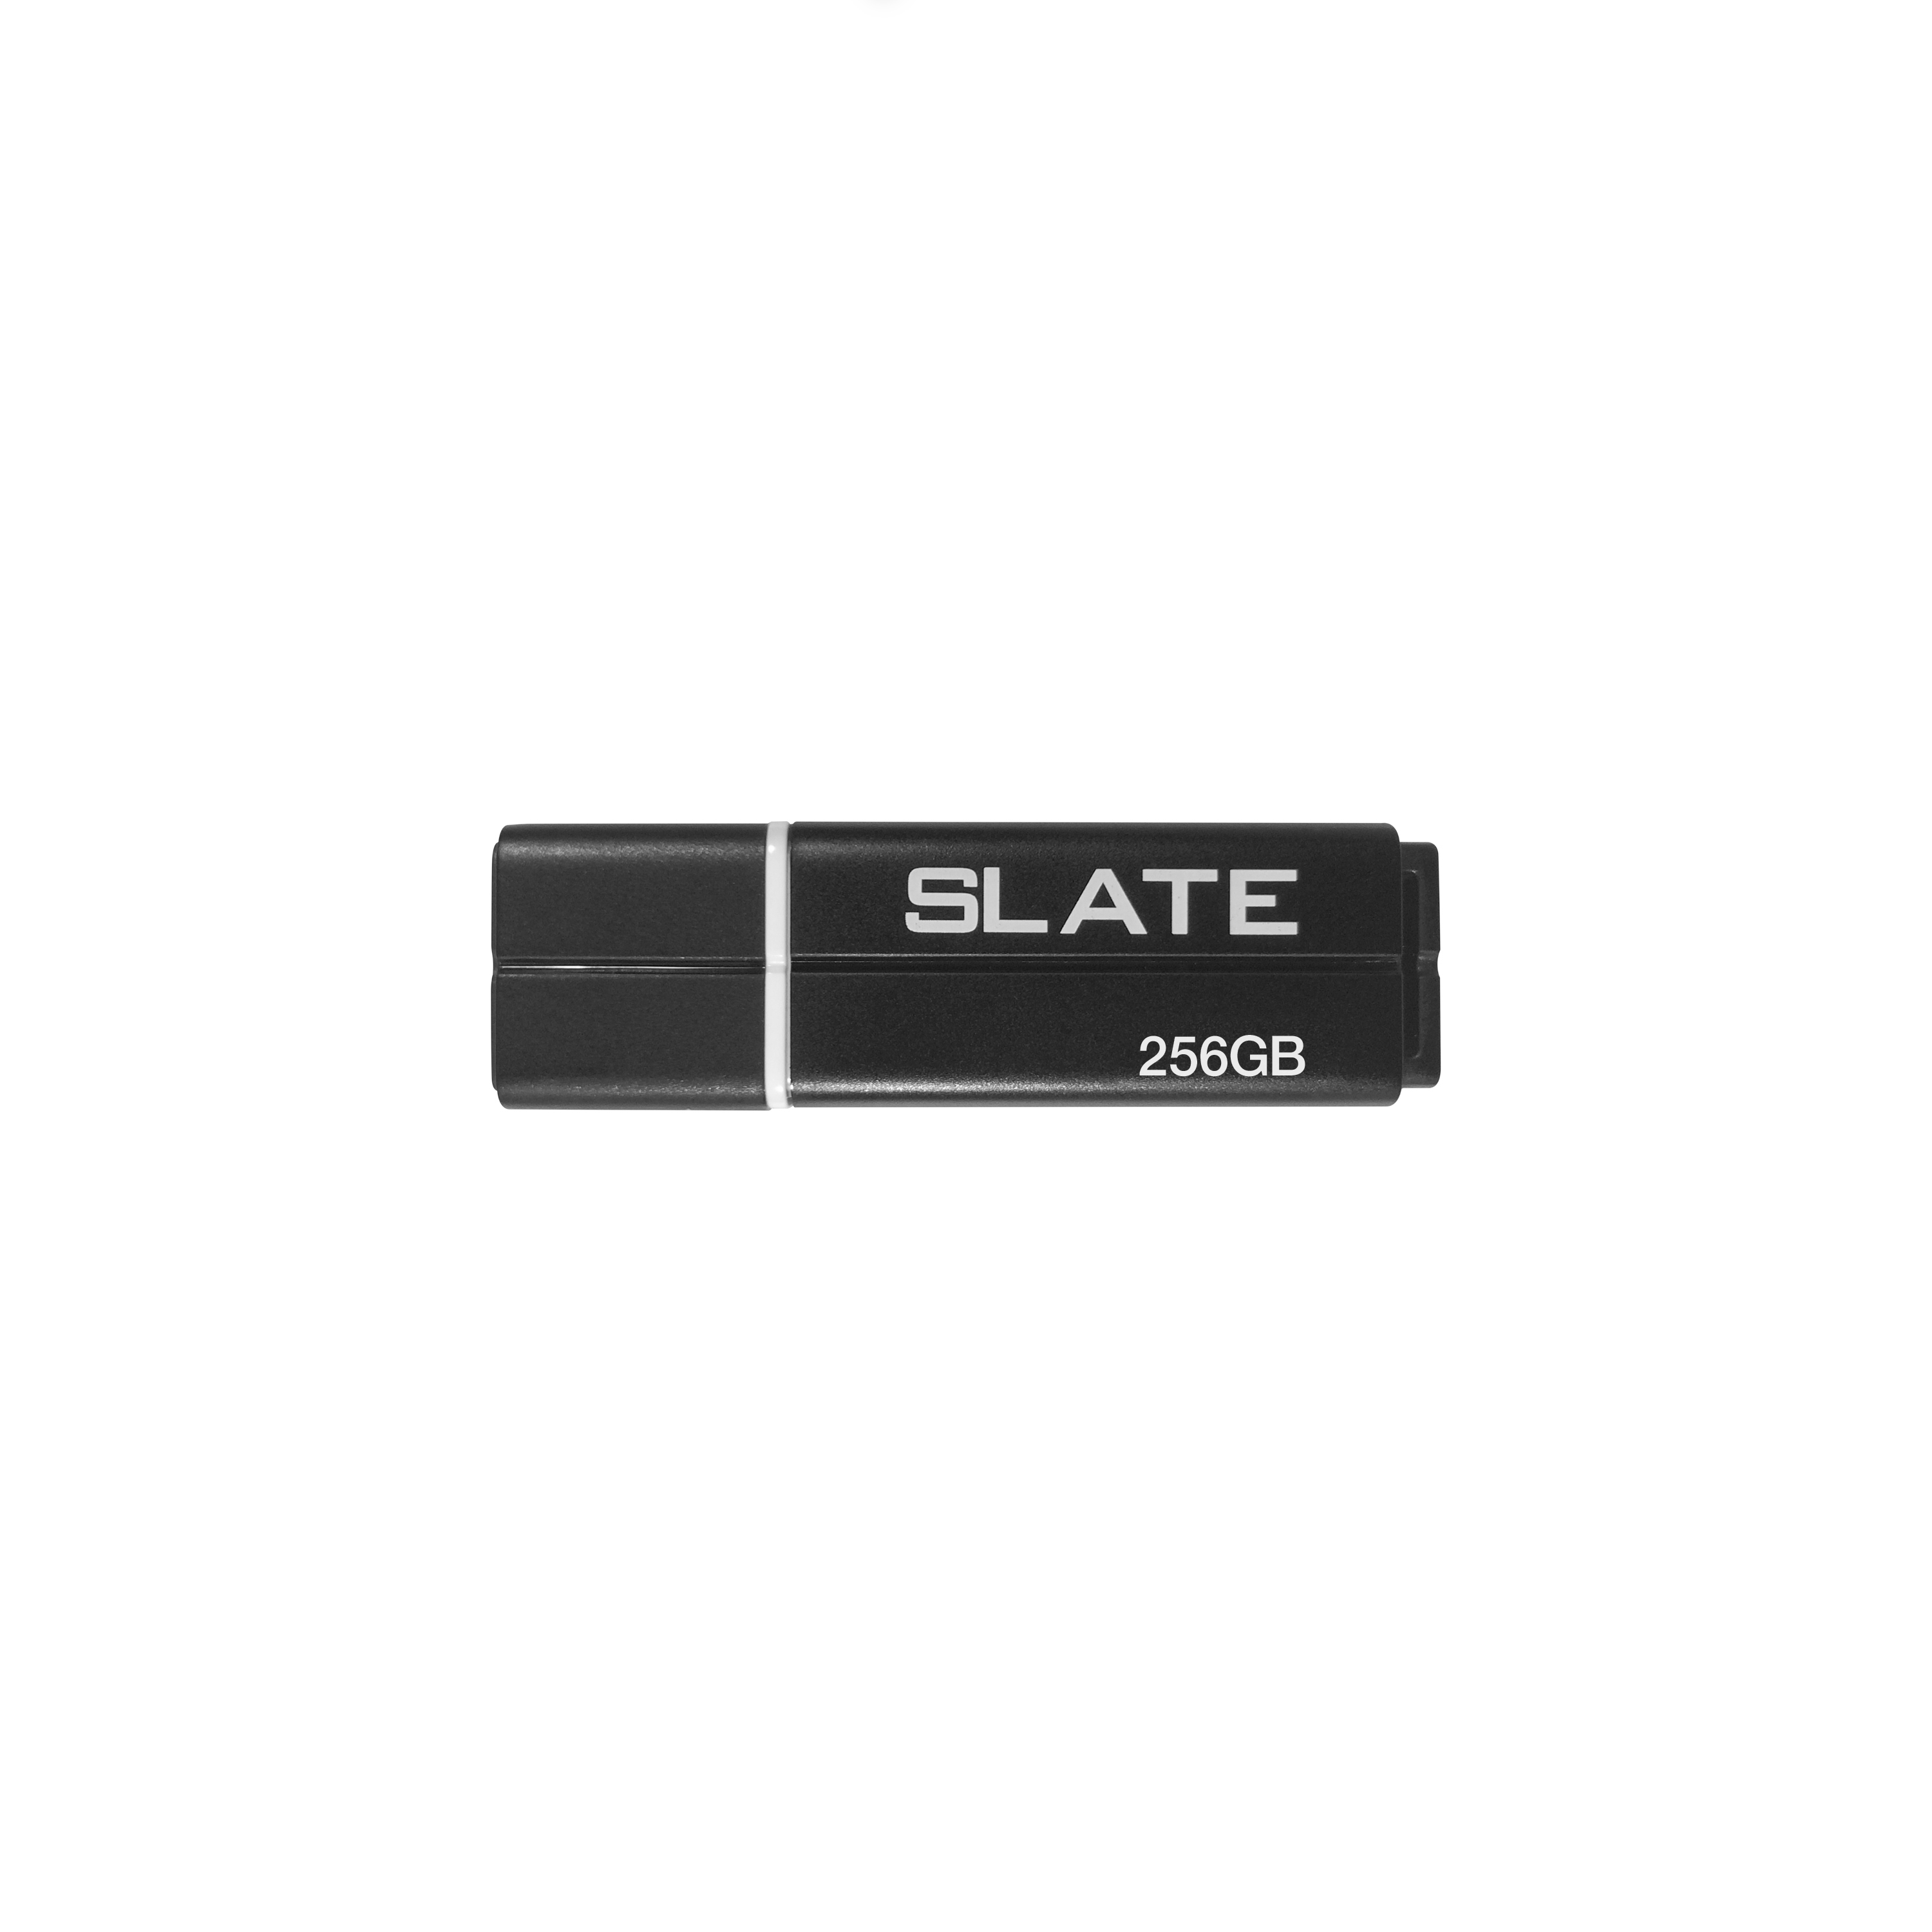 256GB Patriot Slate USB 3.0 modrý